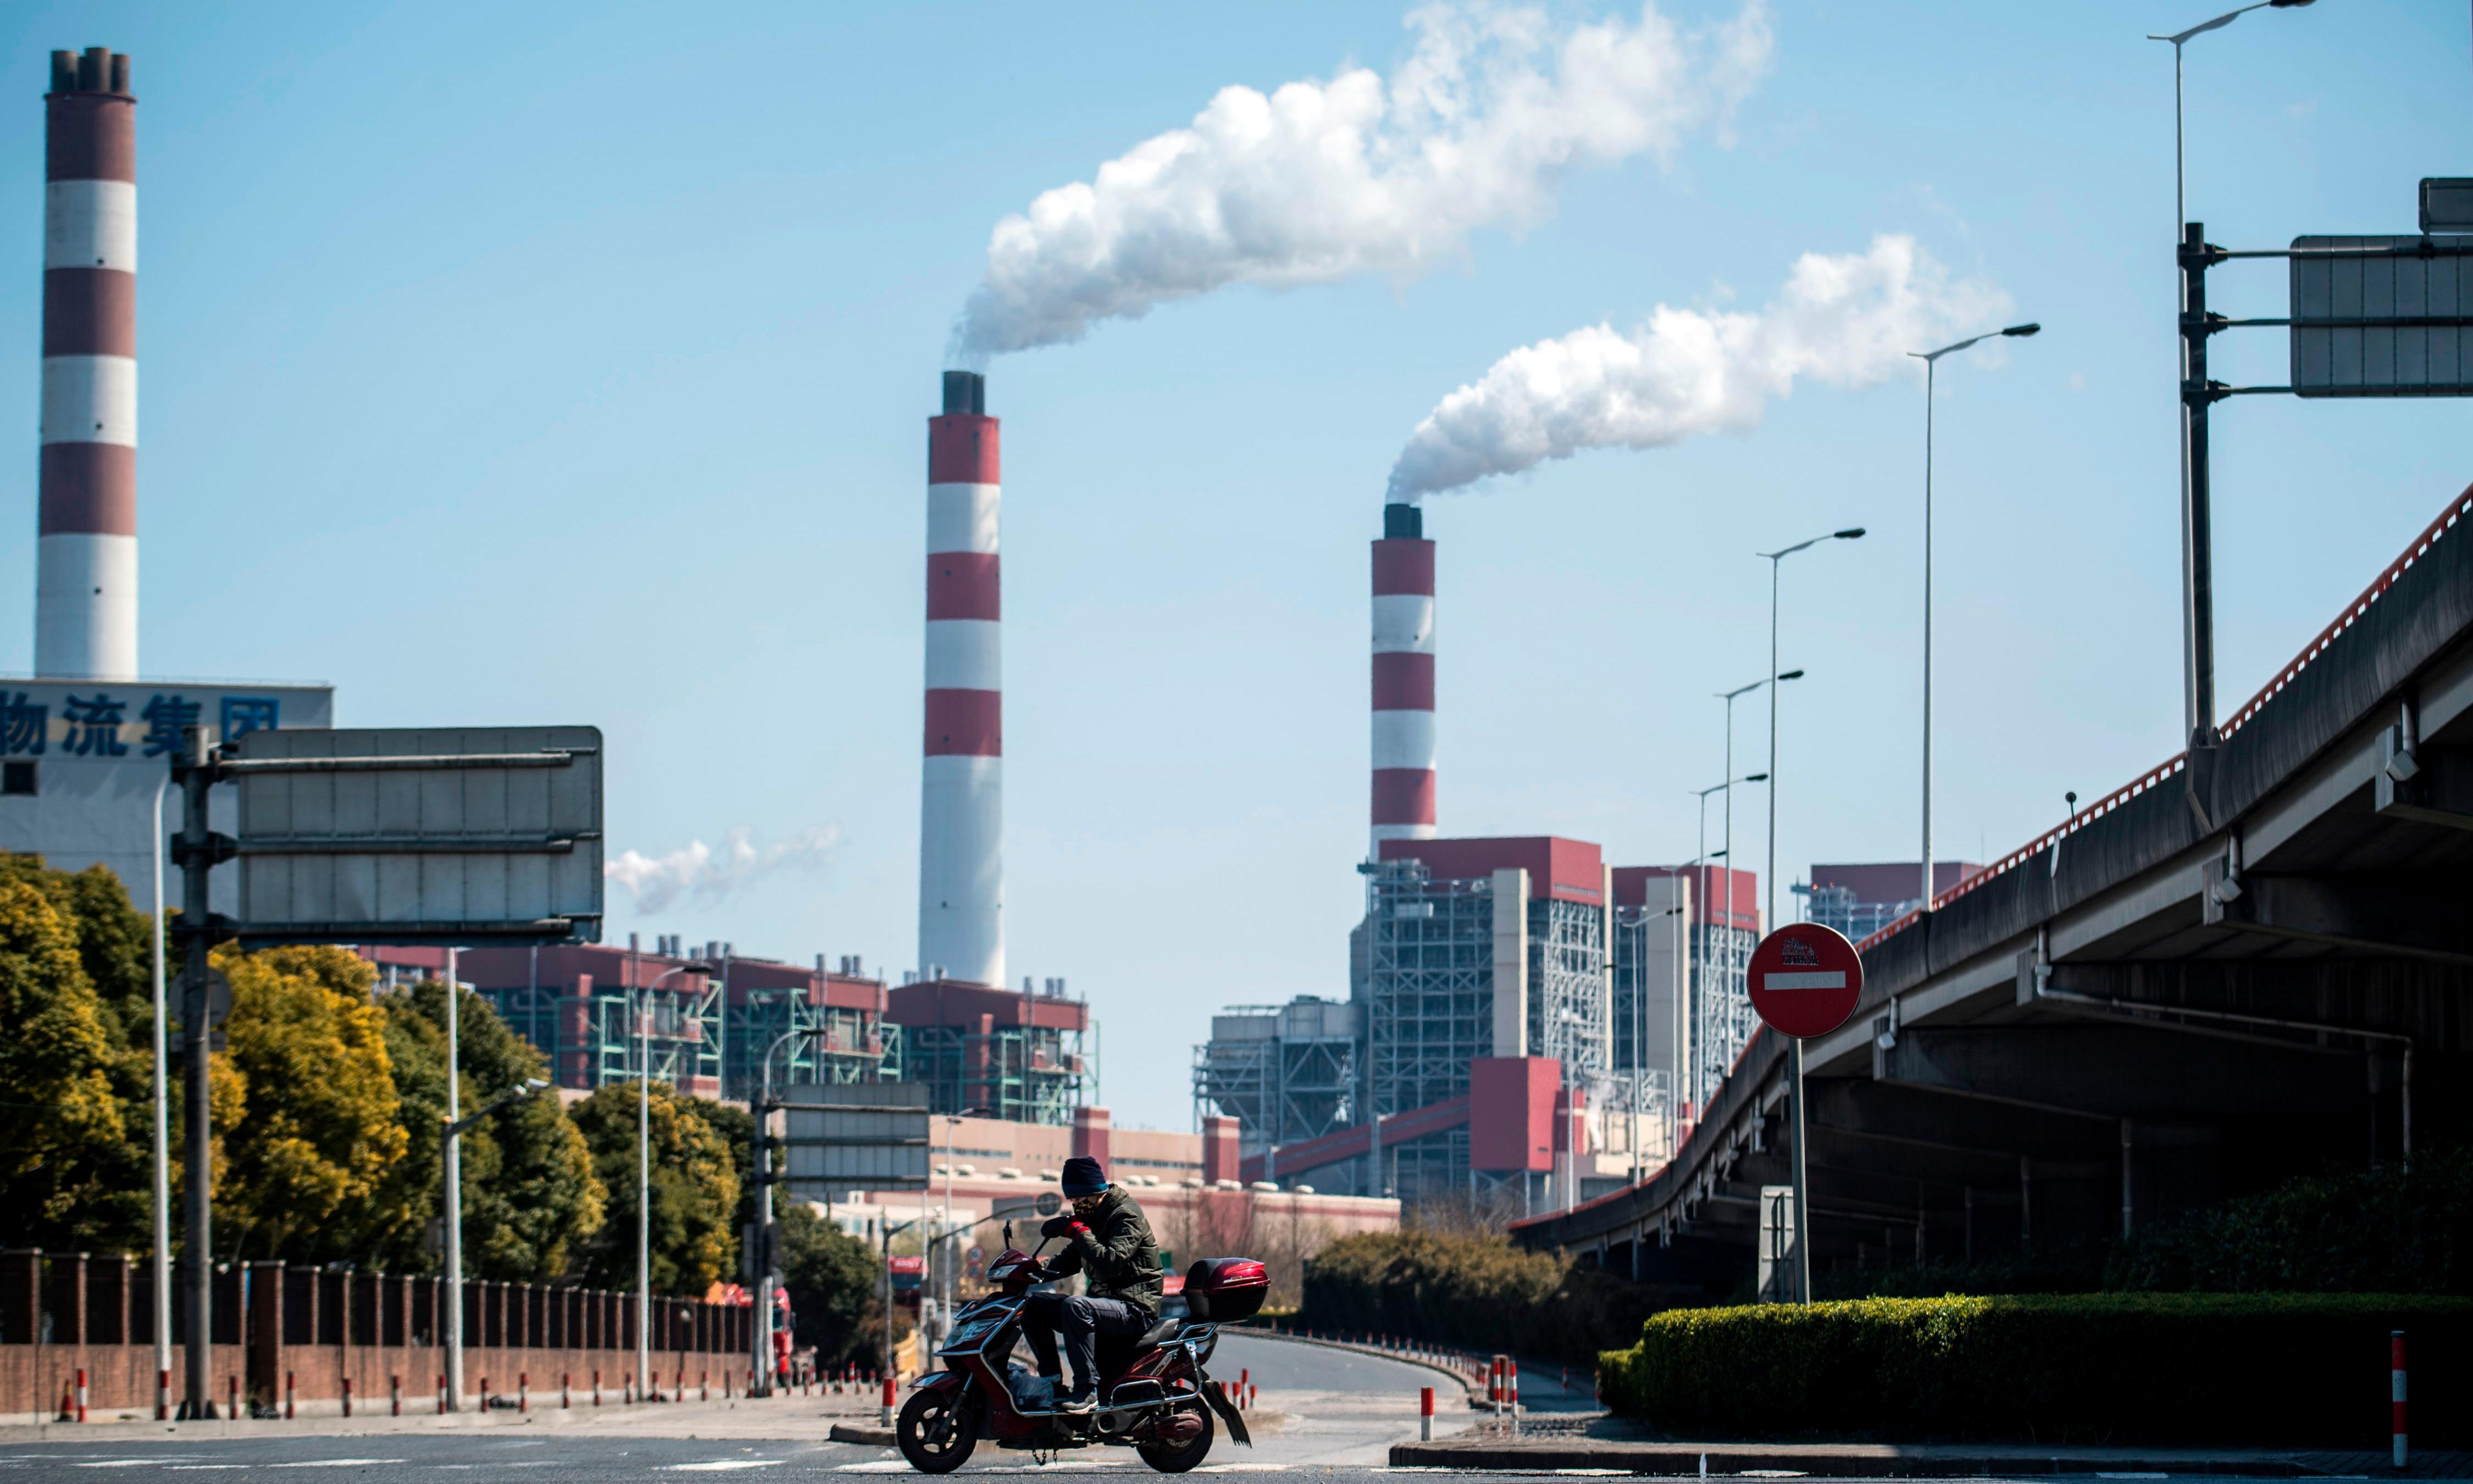 China's appetite for coal power returns despite climate pledge